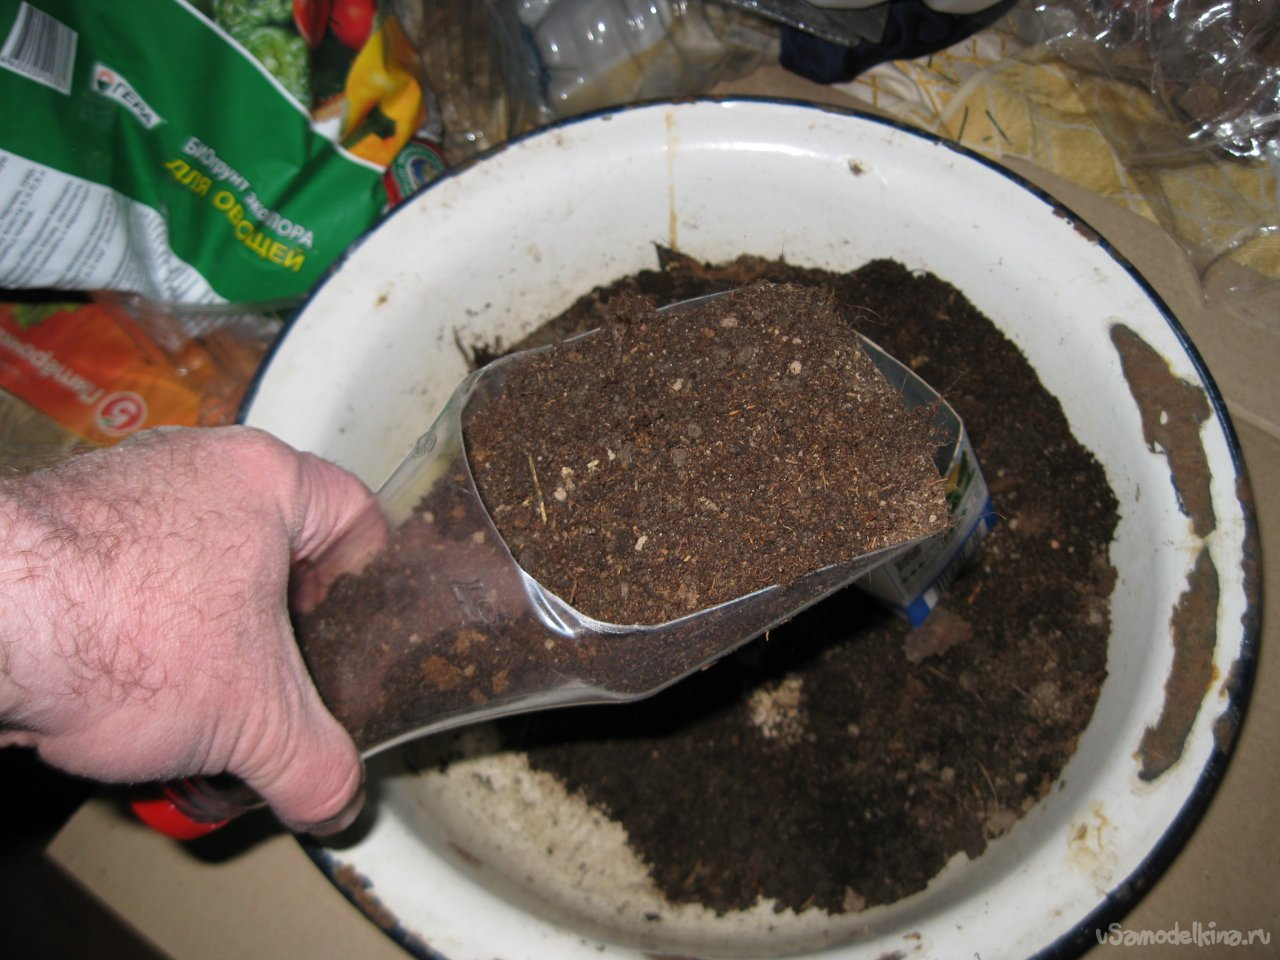 Two simple homemade scoops for working with soil for seedlings